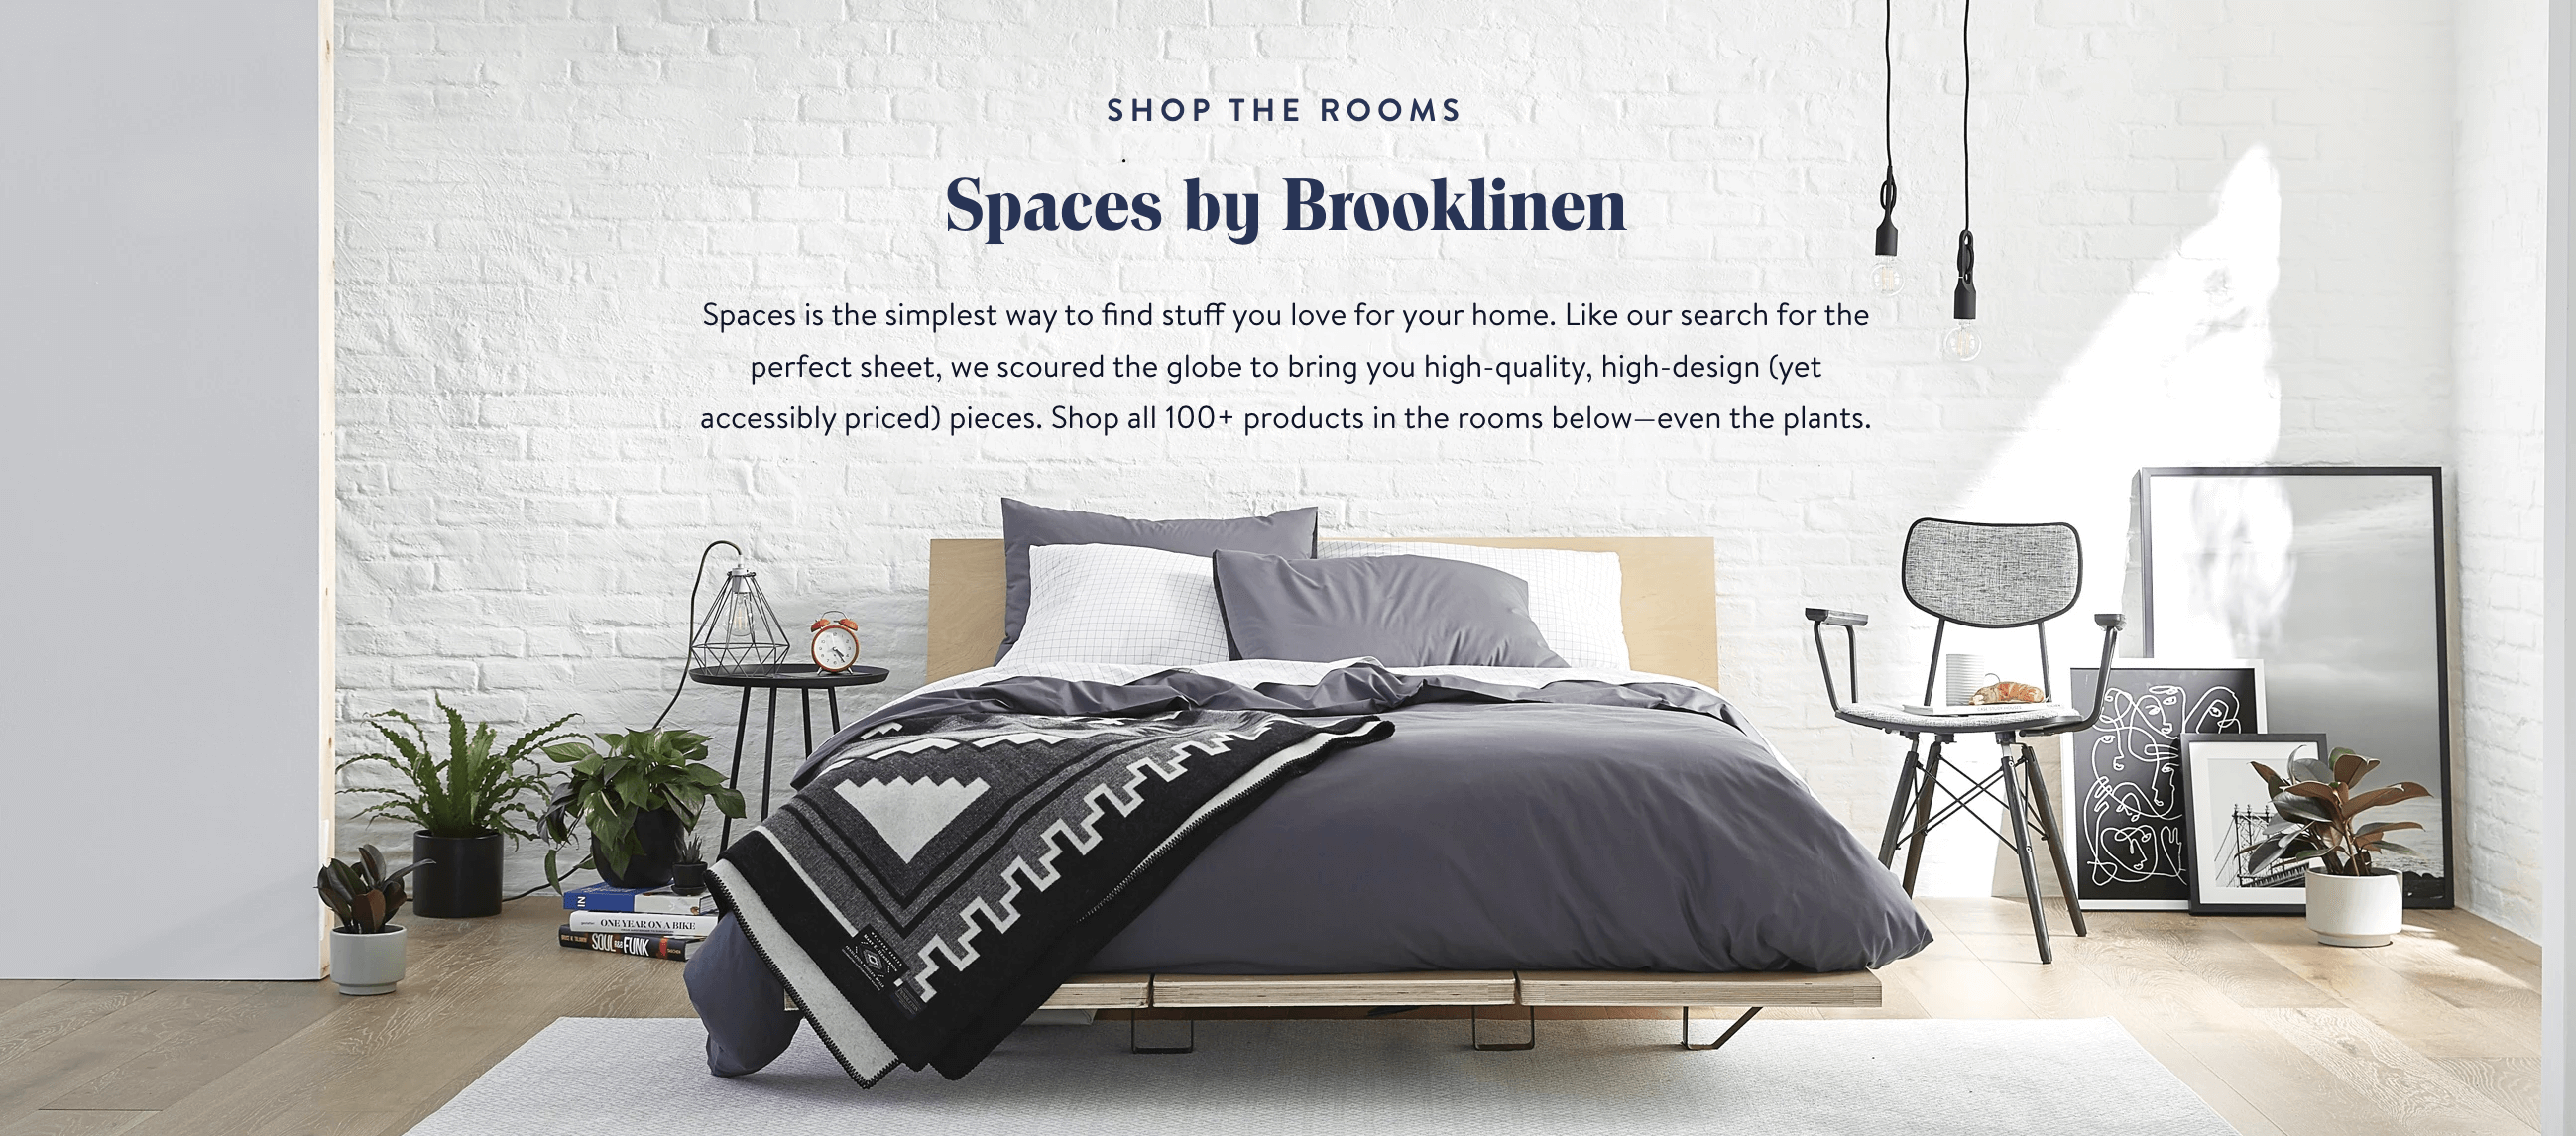 Launching new brands is harder than folding a fitted sheet, so Brooklinen's taking the teamwork route. Spaces by Brooklinen